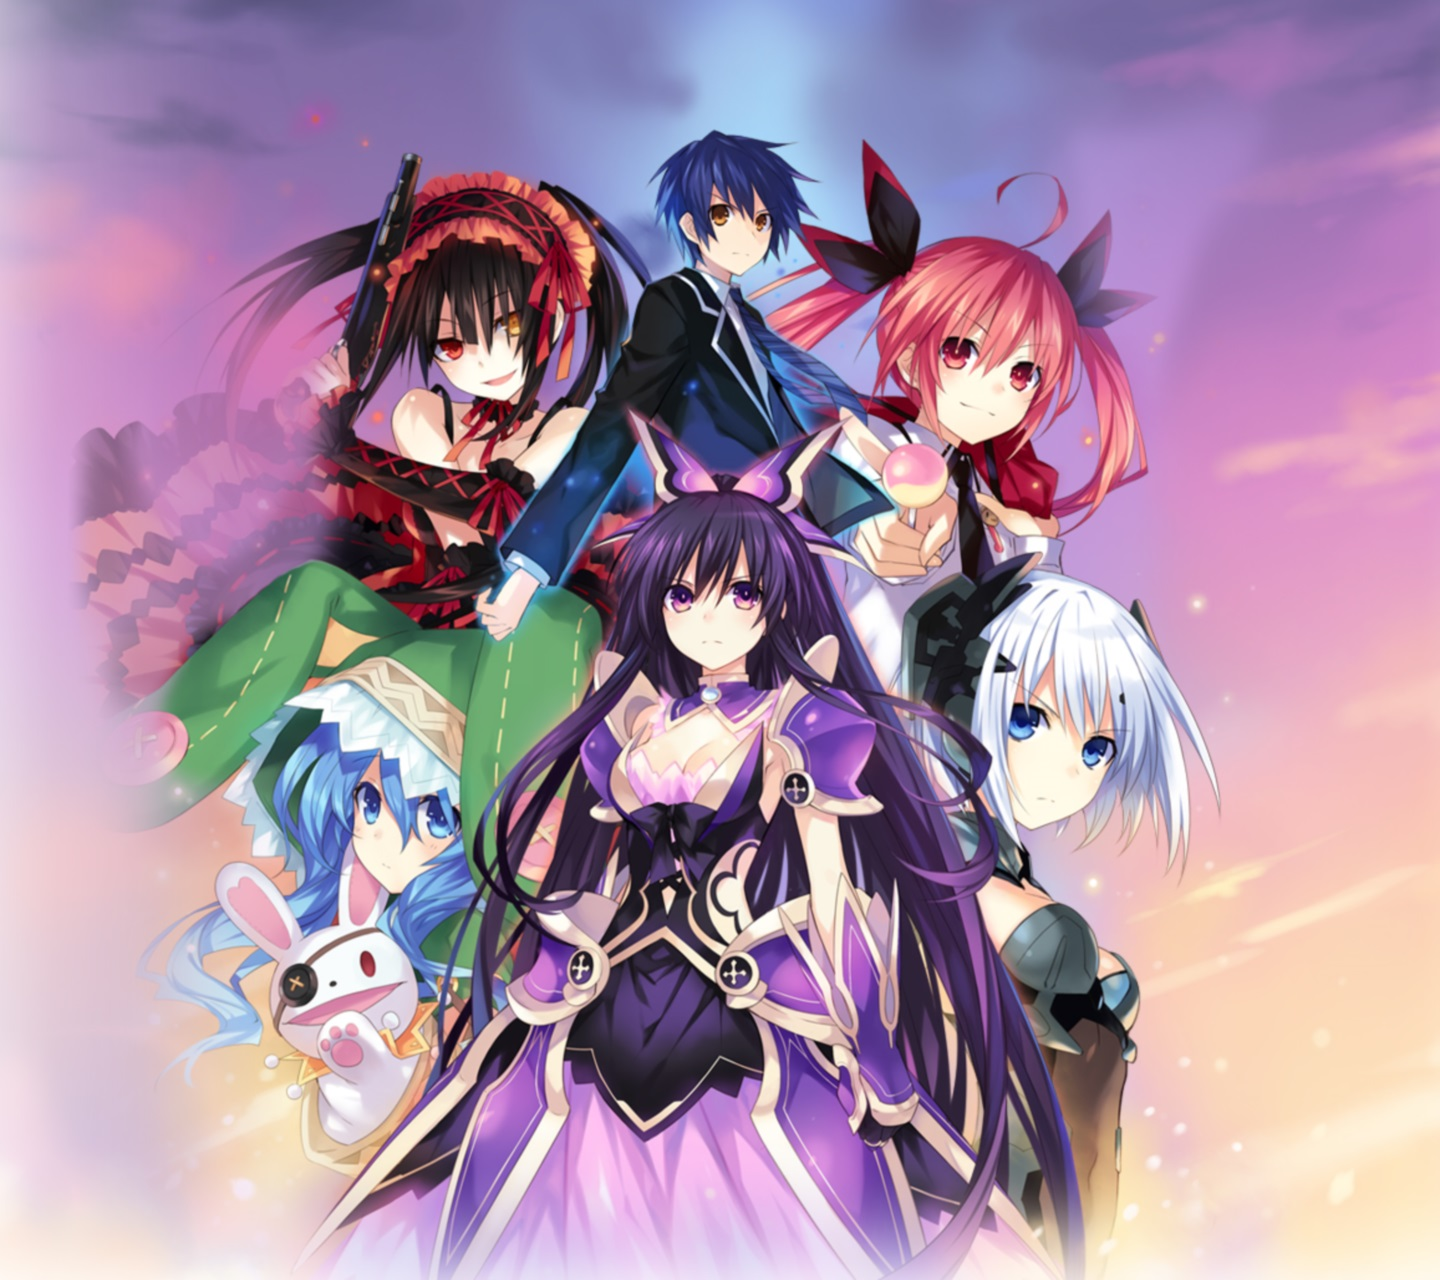 Fall Live Wallpaper Iphone Date A Live Wallpapers For Smartphones Iphone Android 720x1280